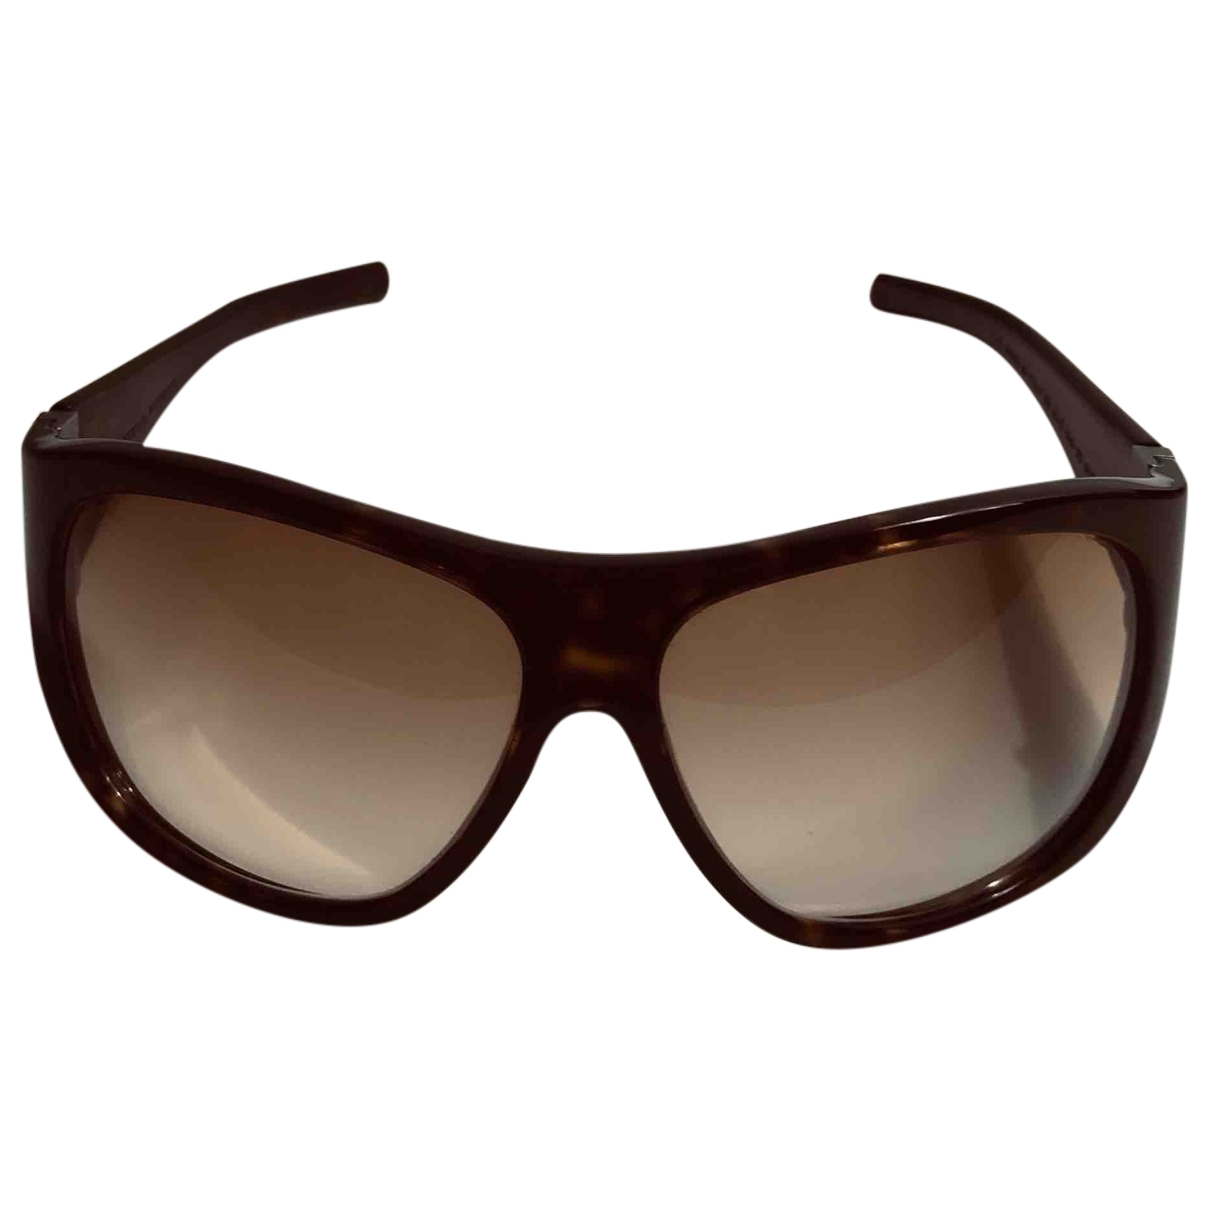 Bottega Veneta \N Brown Sunglasses for Women \N